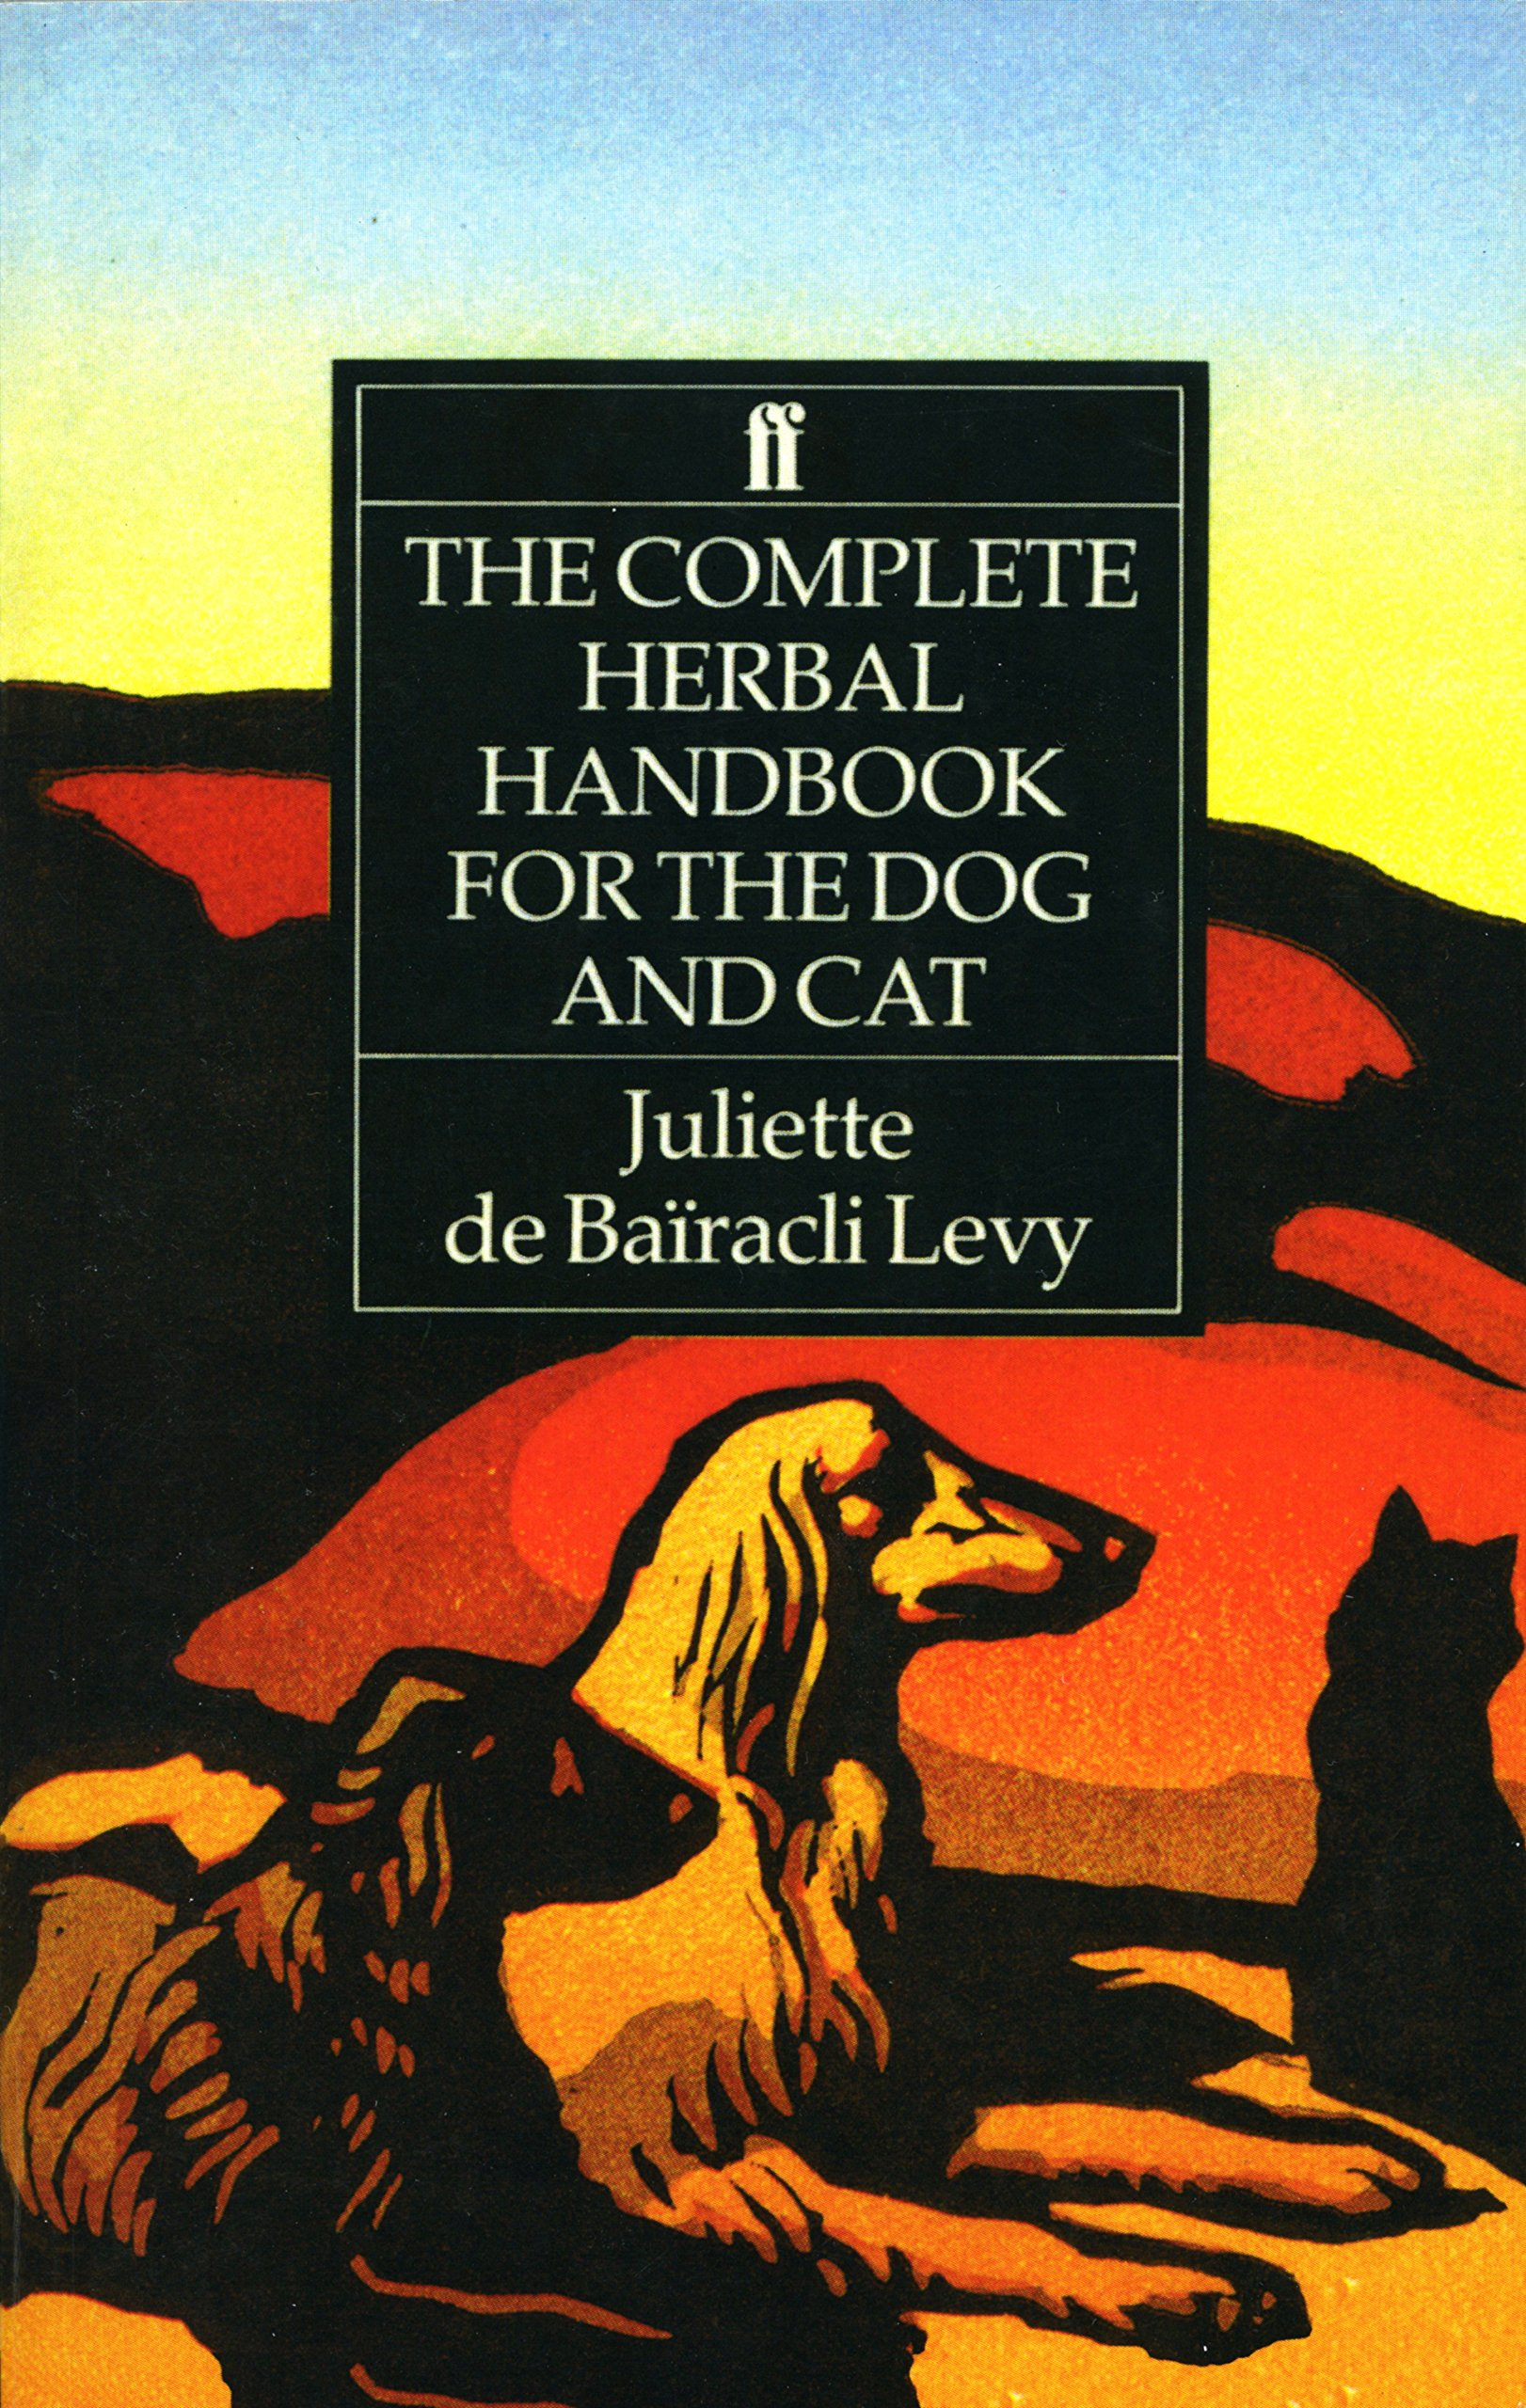 complete herbal handbook for the dog and cat.jpg